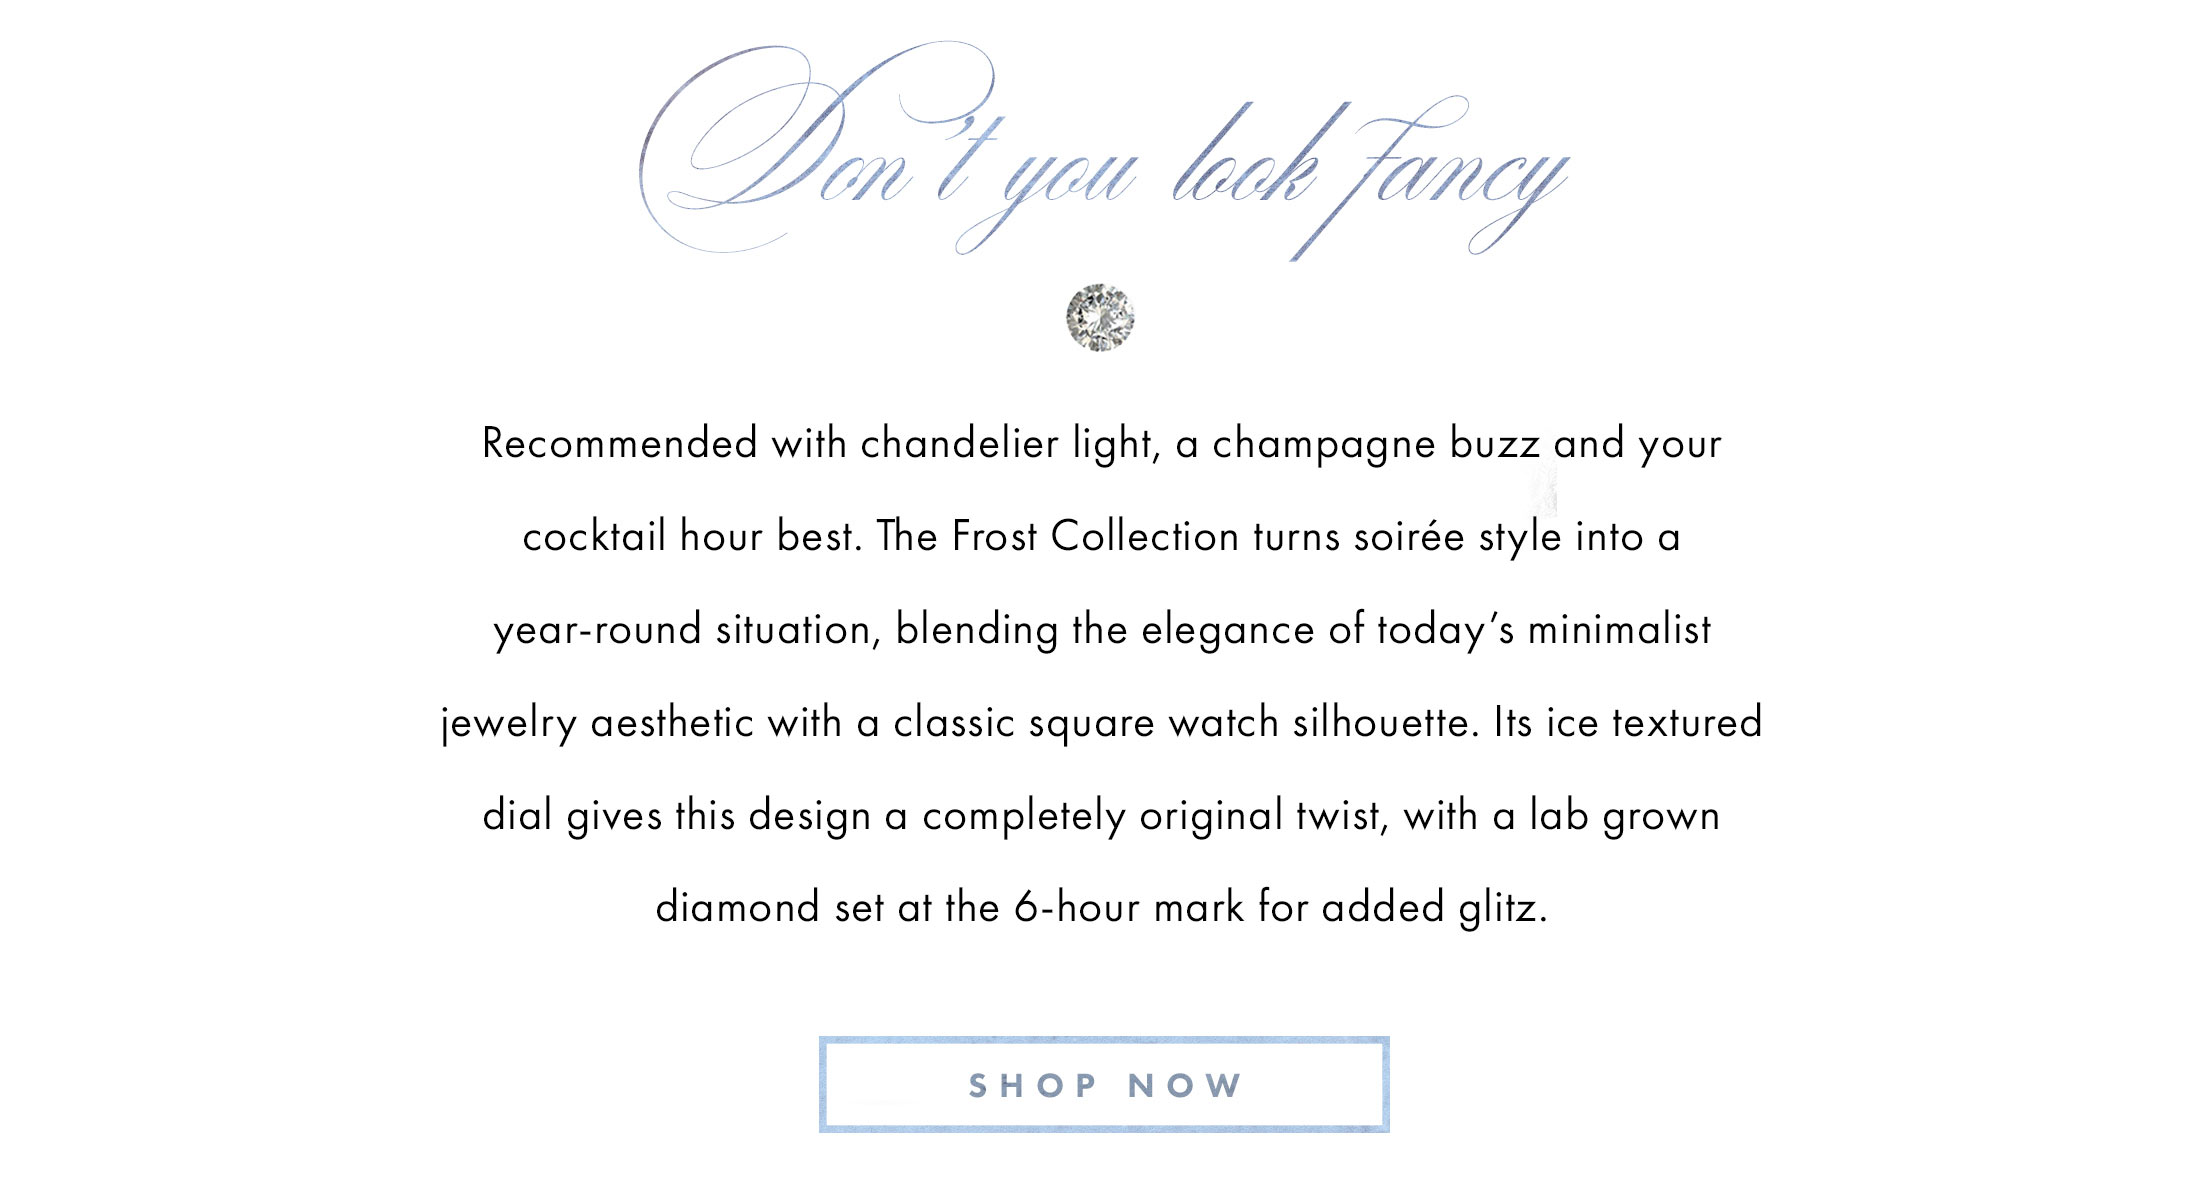 Don't you look fancy. Recommended with chandelier light, a champagne buzz and your cocktail hour best. The Frost Collection turns soiree style into a year-round situation, blending the elegance of today's minimalist jewelry aesthetic with a classic square watch silhouette. Its ice textured dial gives this design a completely original twist, with a lab grown diamond set at the 6-hour mark for added glitz. Shop now